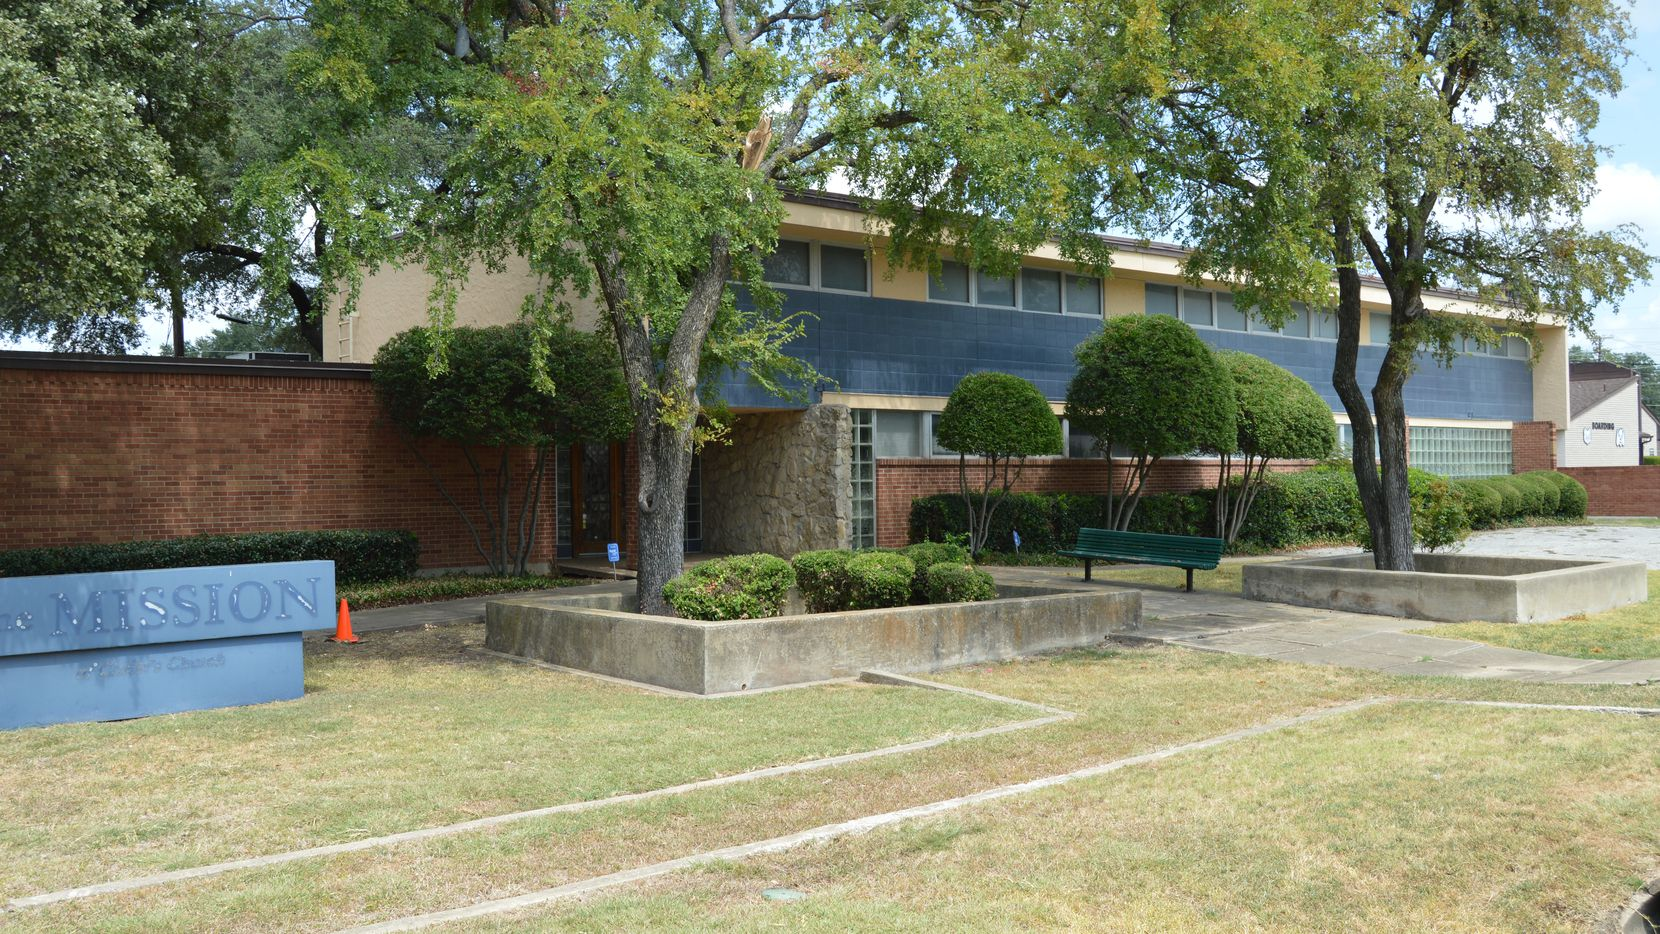 Spring Valley United Methodist Church sold the office building at 13959 Peyton Drive in Dallas.